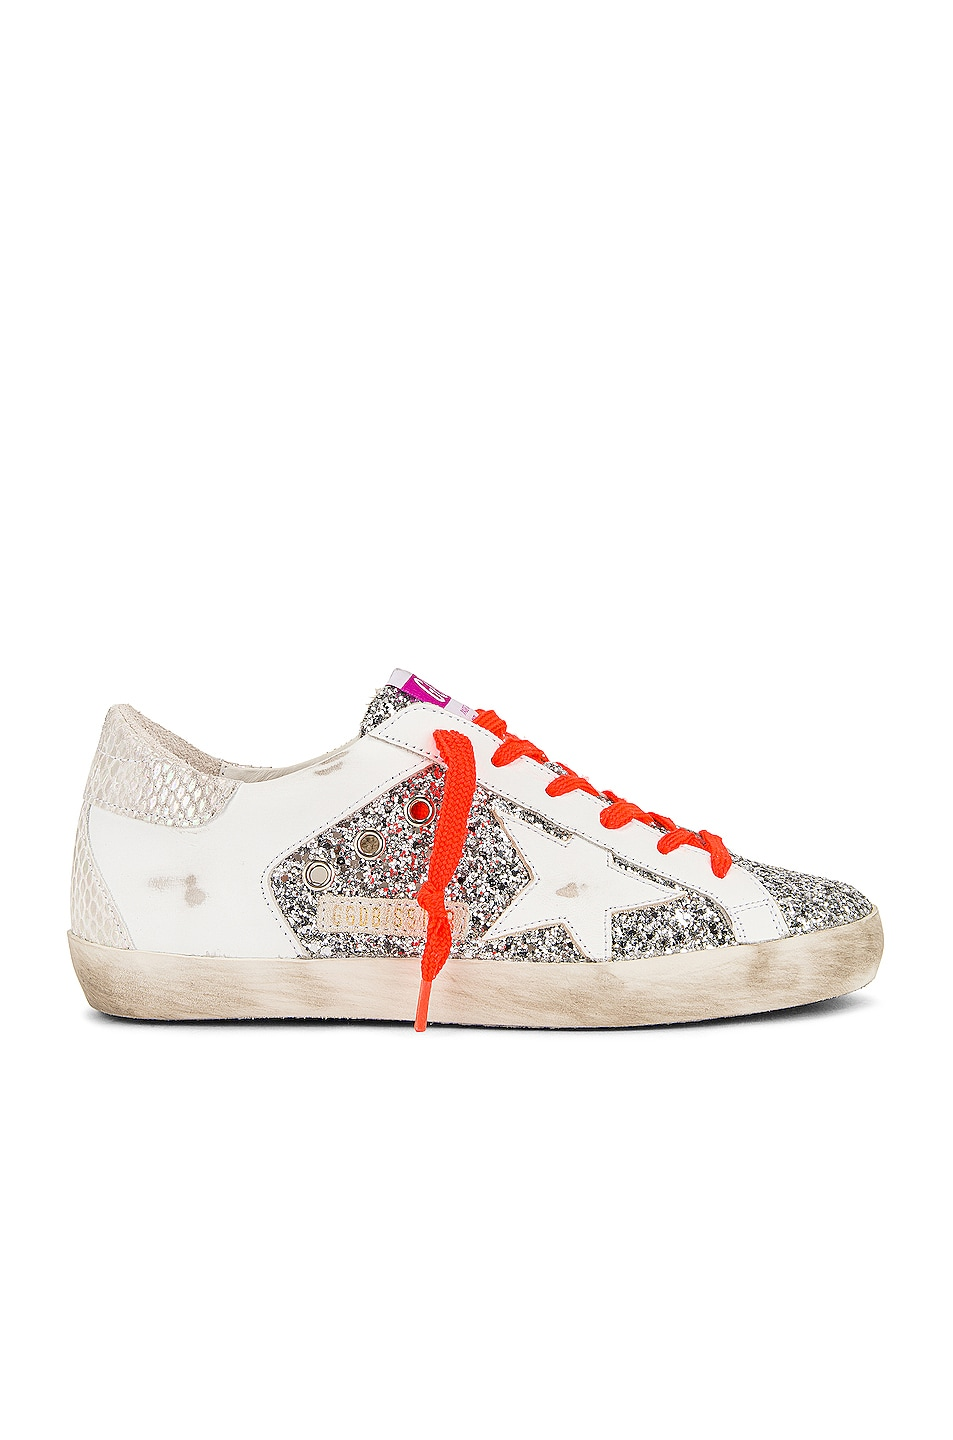 Image 1 of Golden Goose Super Star Sneaker in Silver, White & Ice